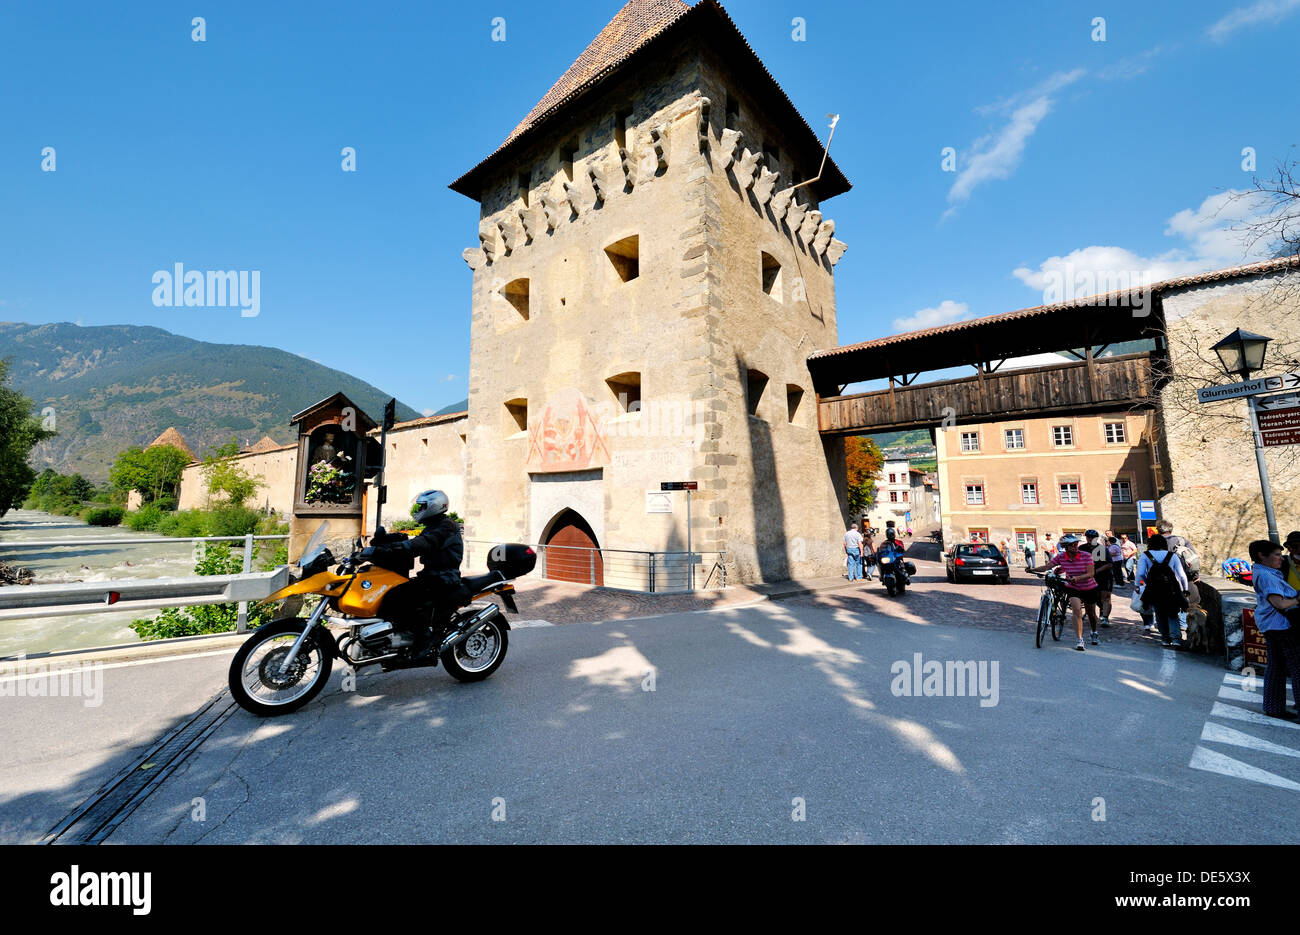 The southern gate into the Mediaeval walled town of Stadt Glurns in the Val Venosta, Italian Alps. Glorenza - Stock Image